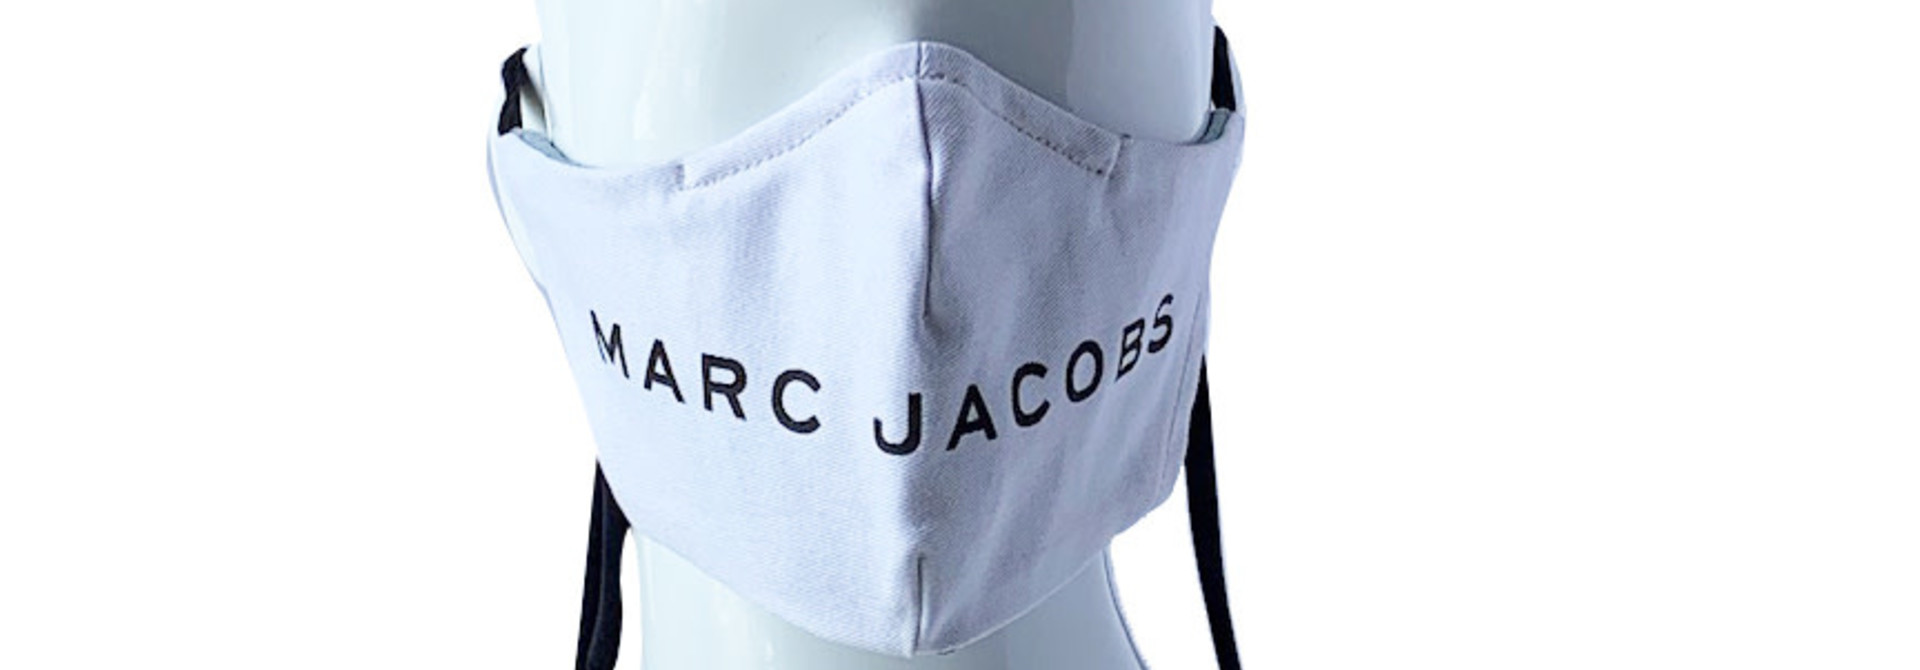 LAST PRGRM REPURPOSED MASK MARC JACOBS WHITE